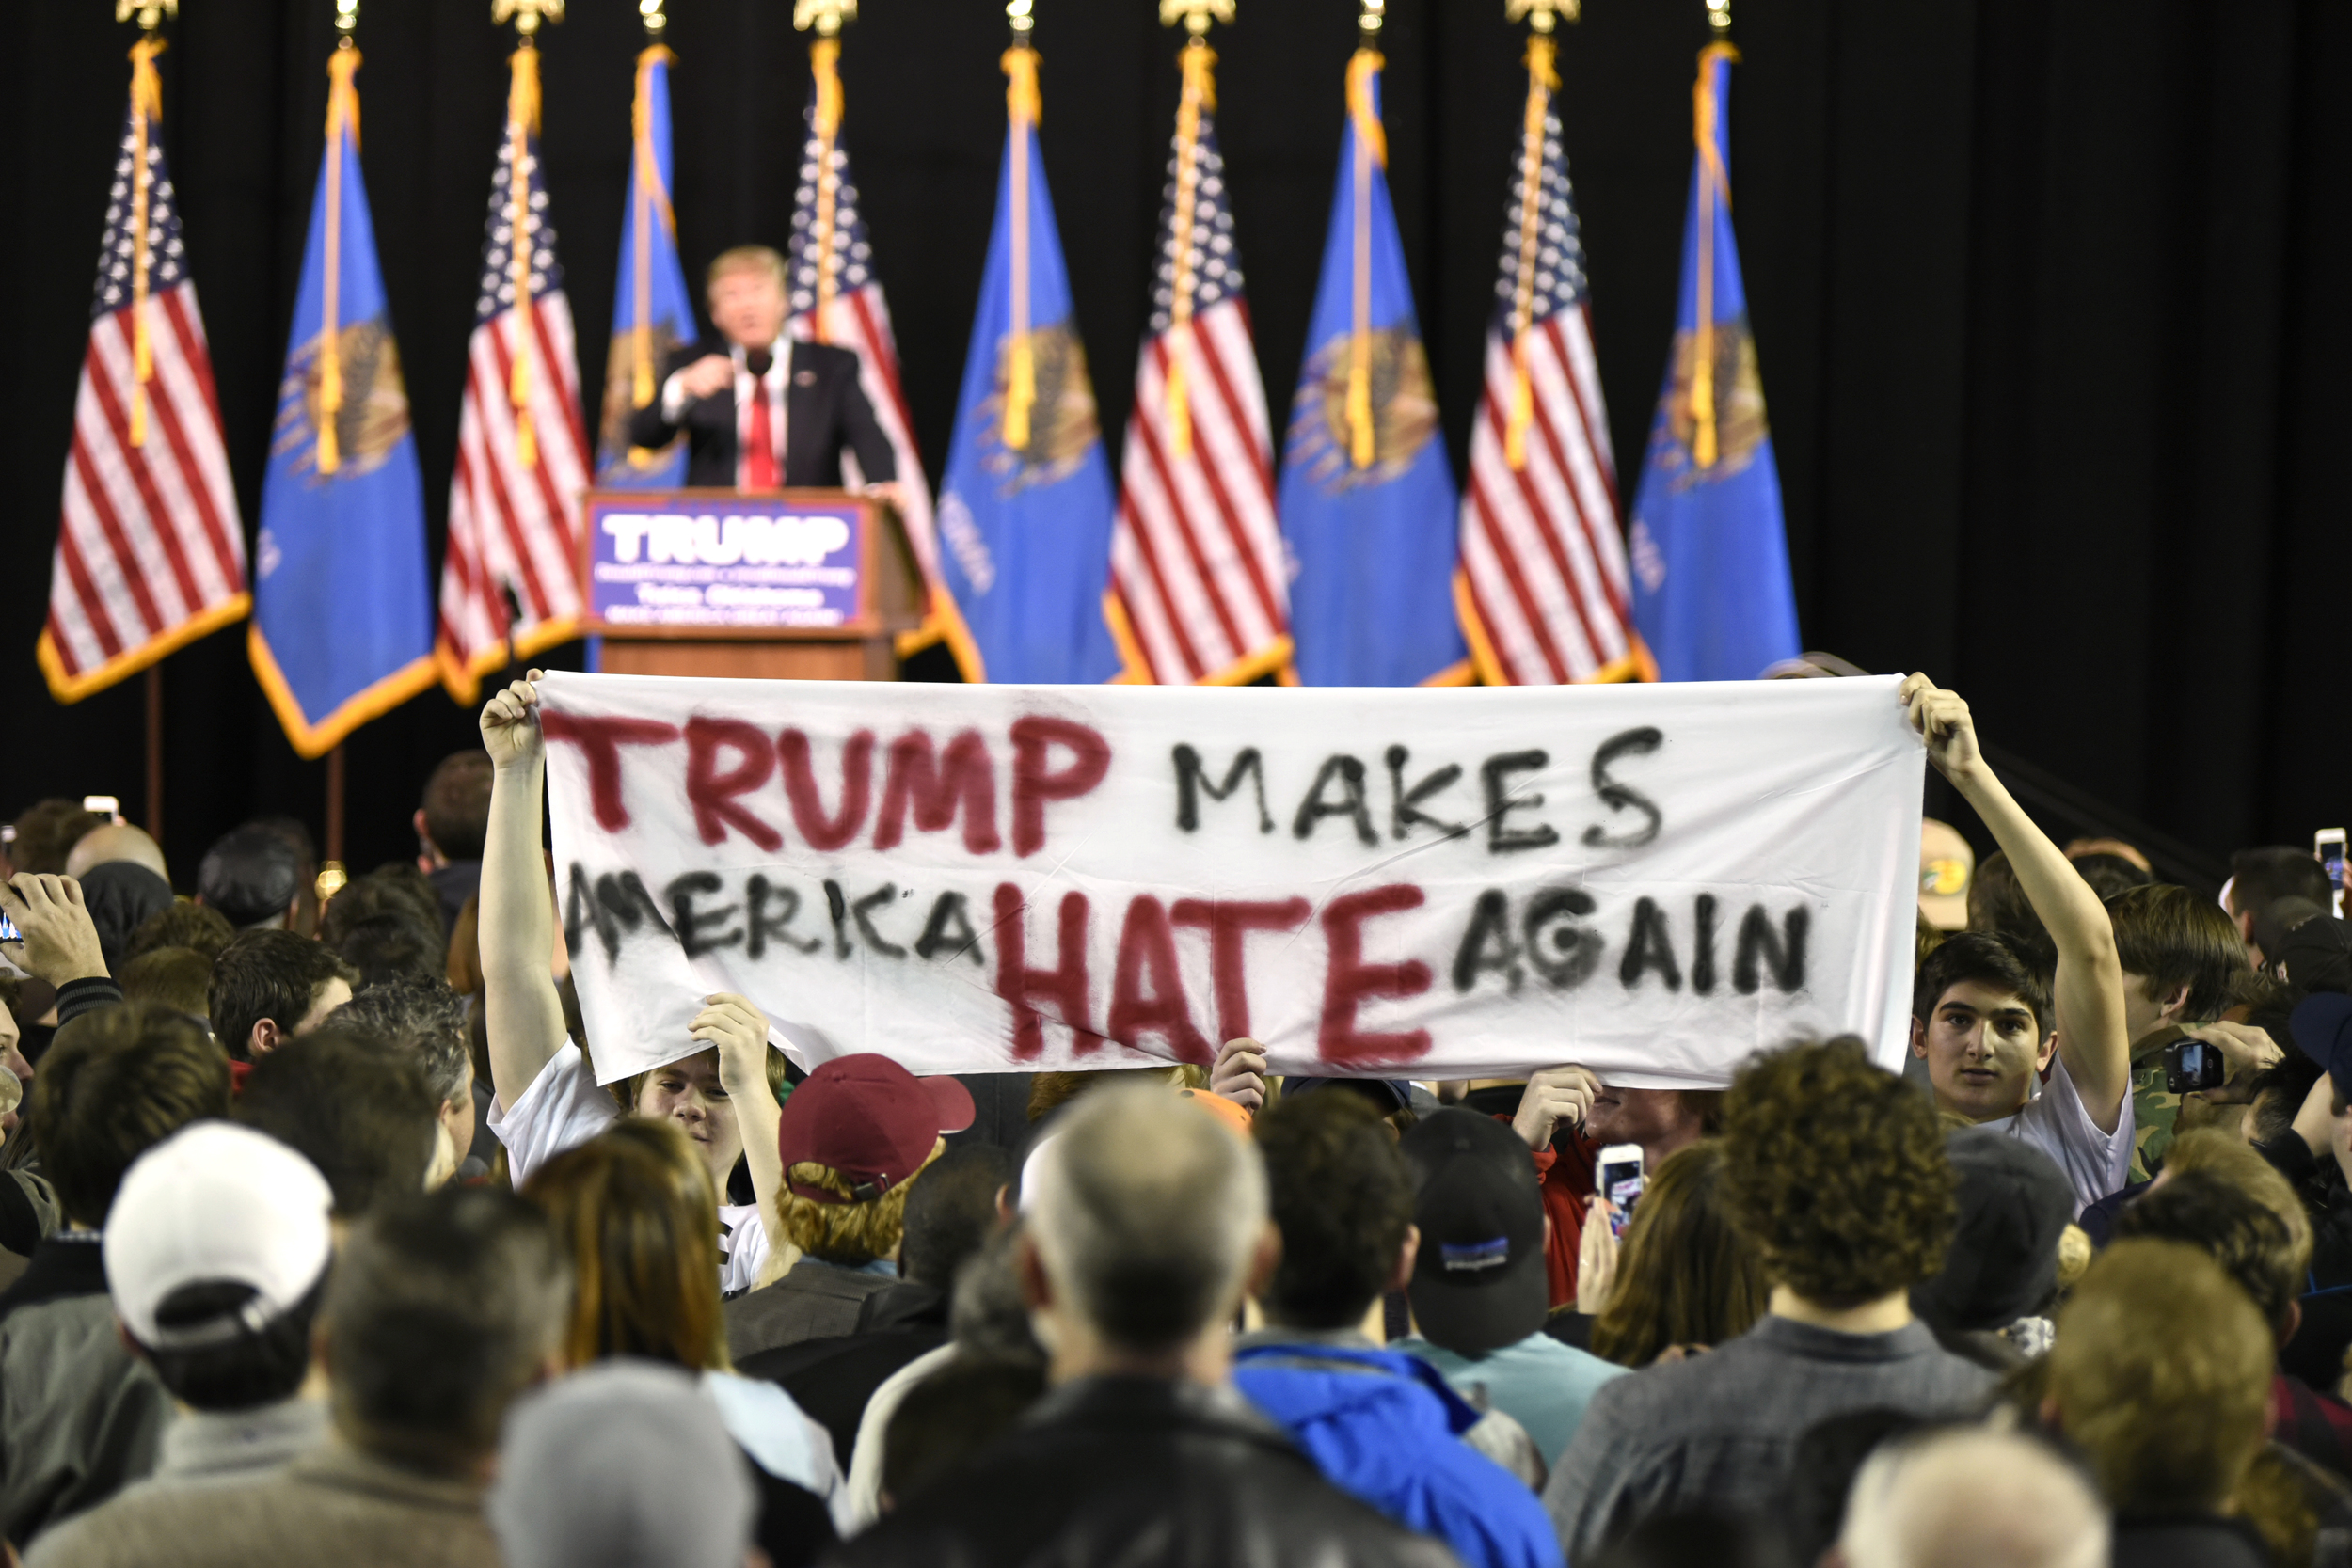 Protesters interrupt Republican presidential candidate Donald Trump during a rally in Tulsa Oklahoma. Reuters/Nick Oxford